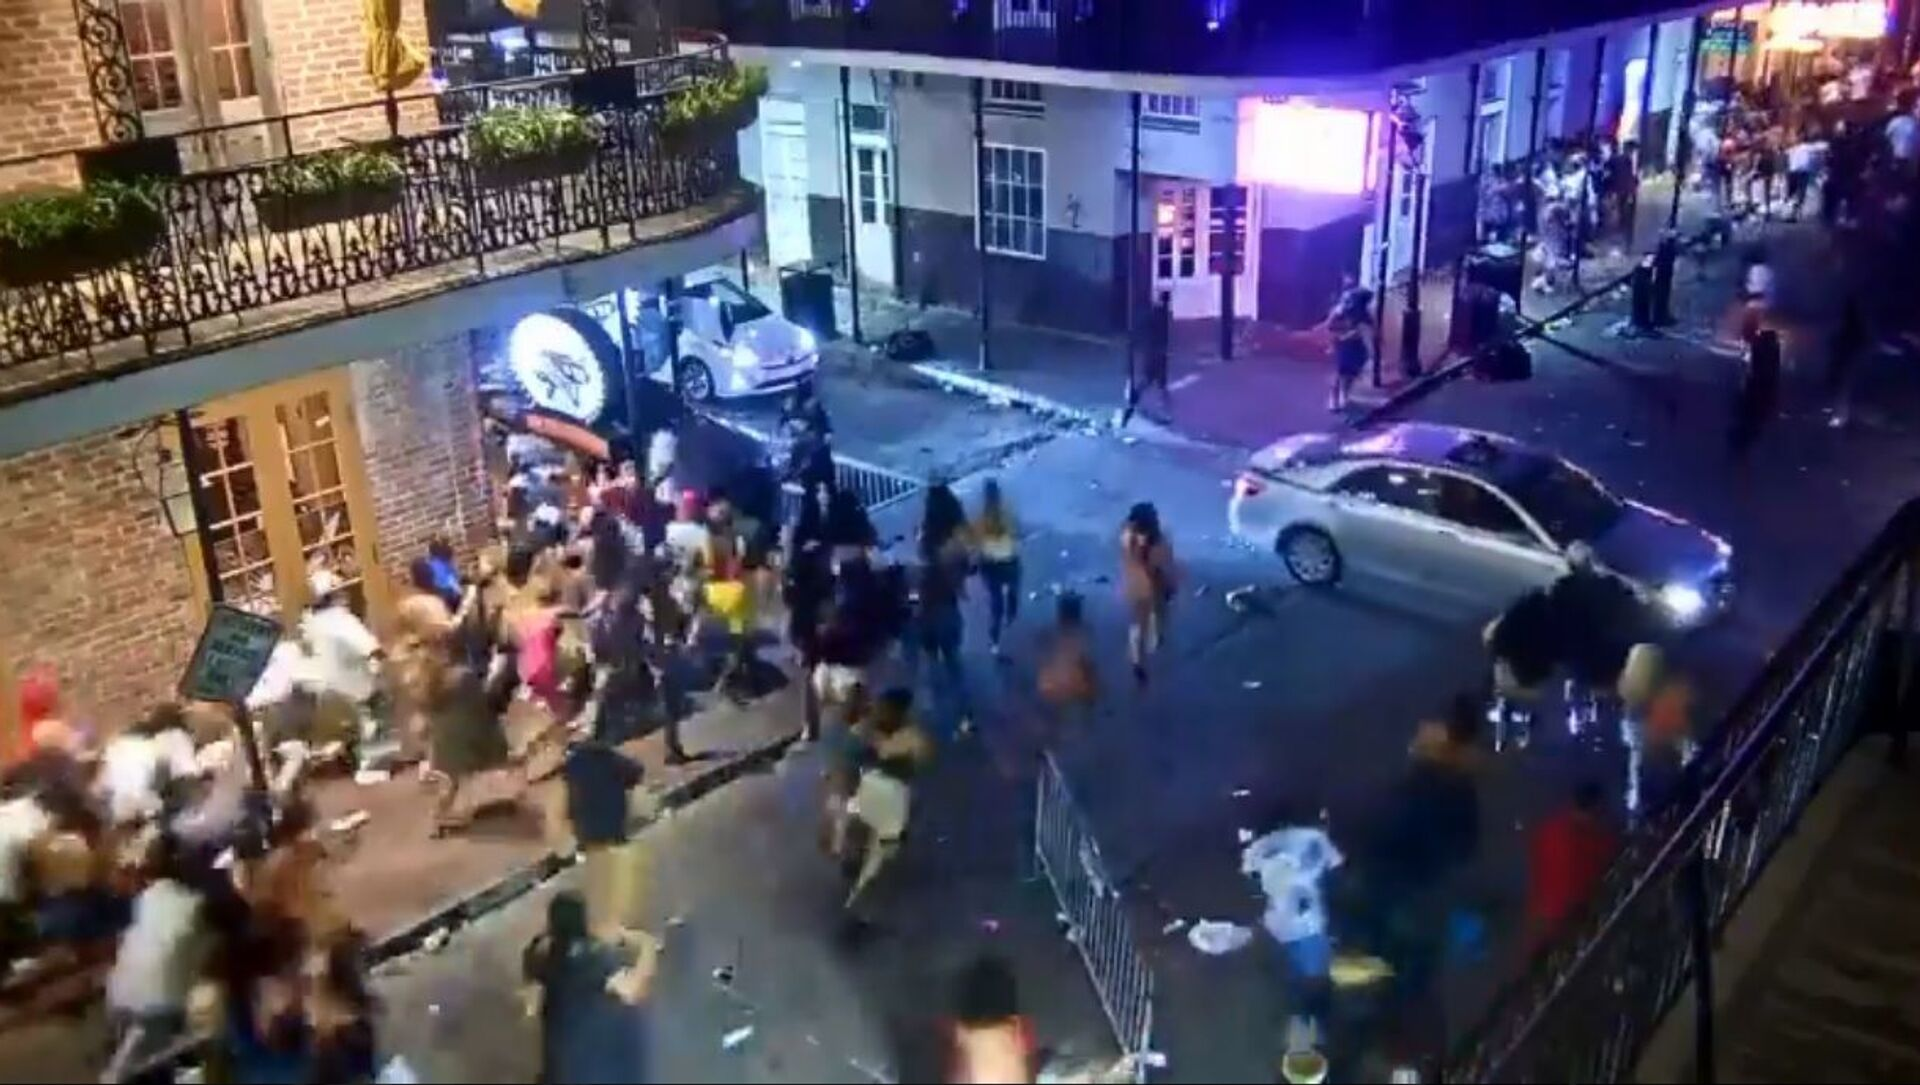 Five people have been wounded after a reported mass shooting occurred at the intersection of Bourbon Street and Orleans Avenue in the heart of the French Quarter in New Orleans - Sputnik International, 1920, 01.08.2021